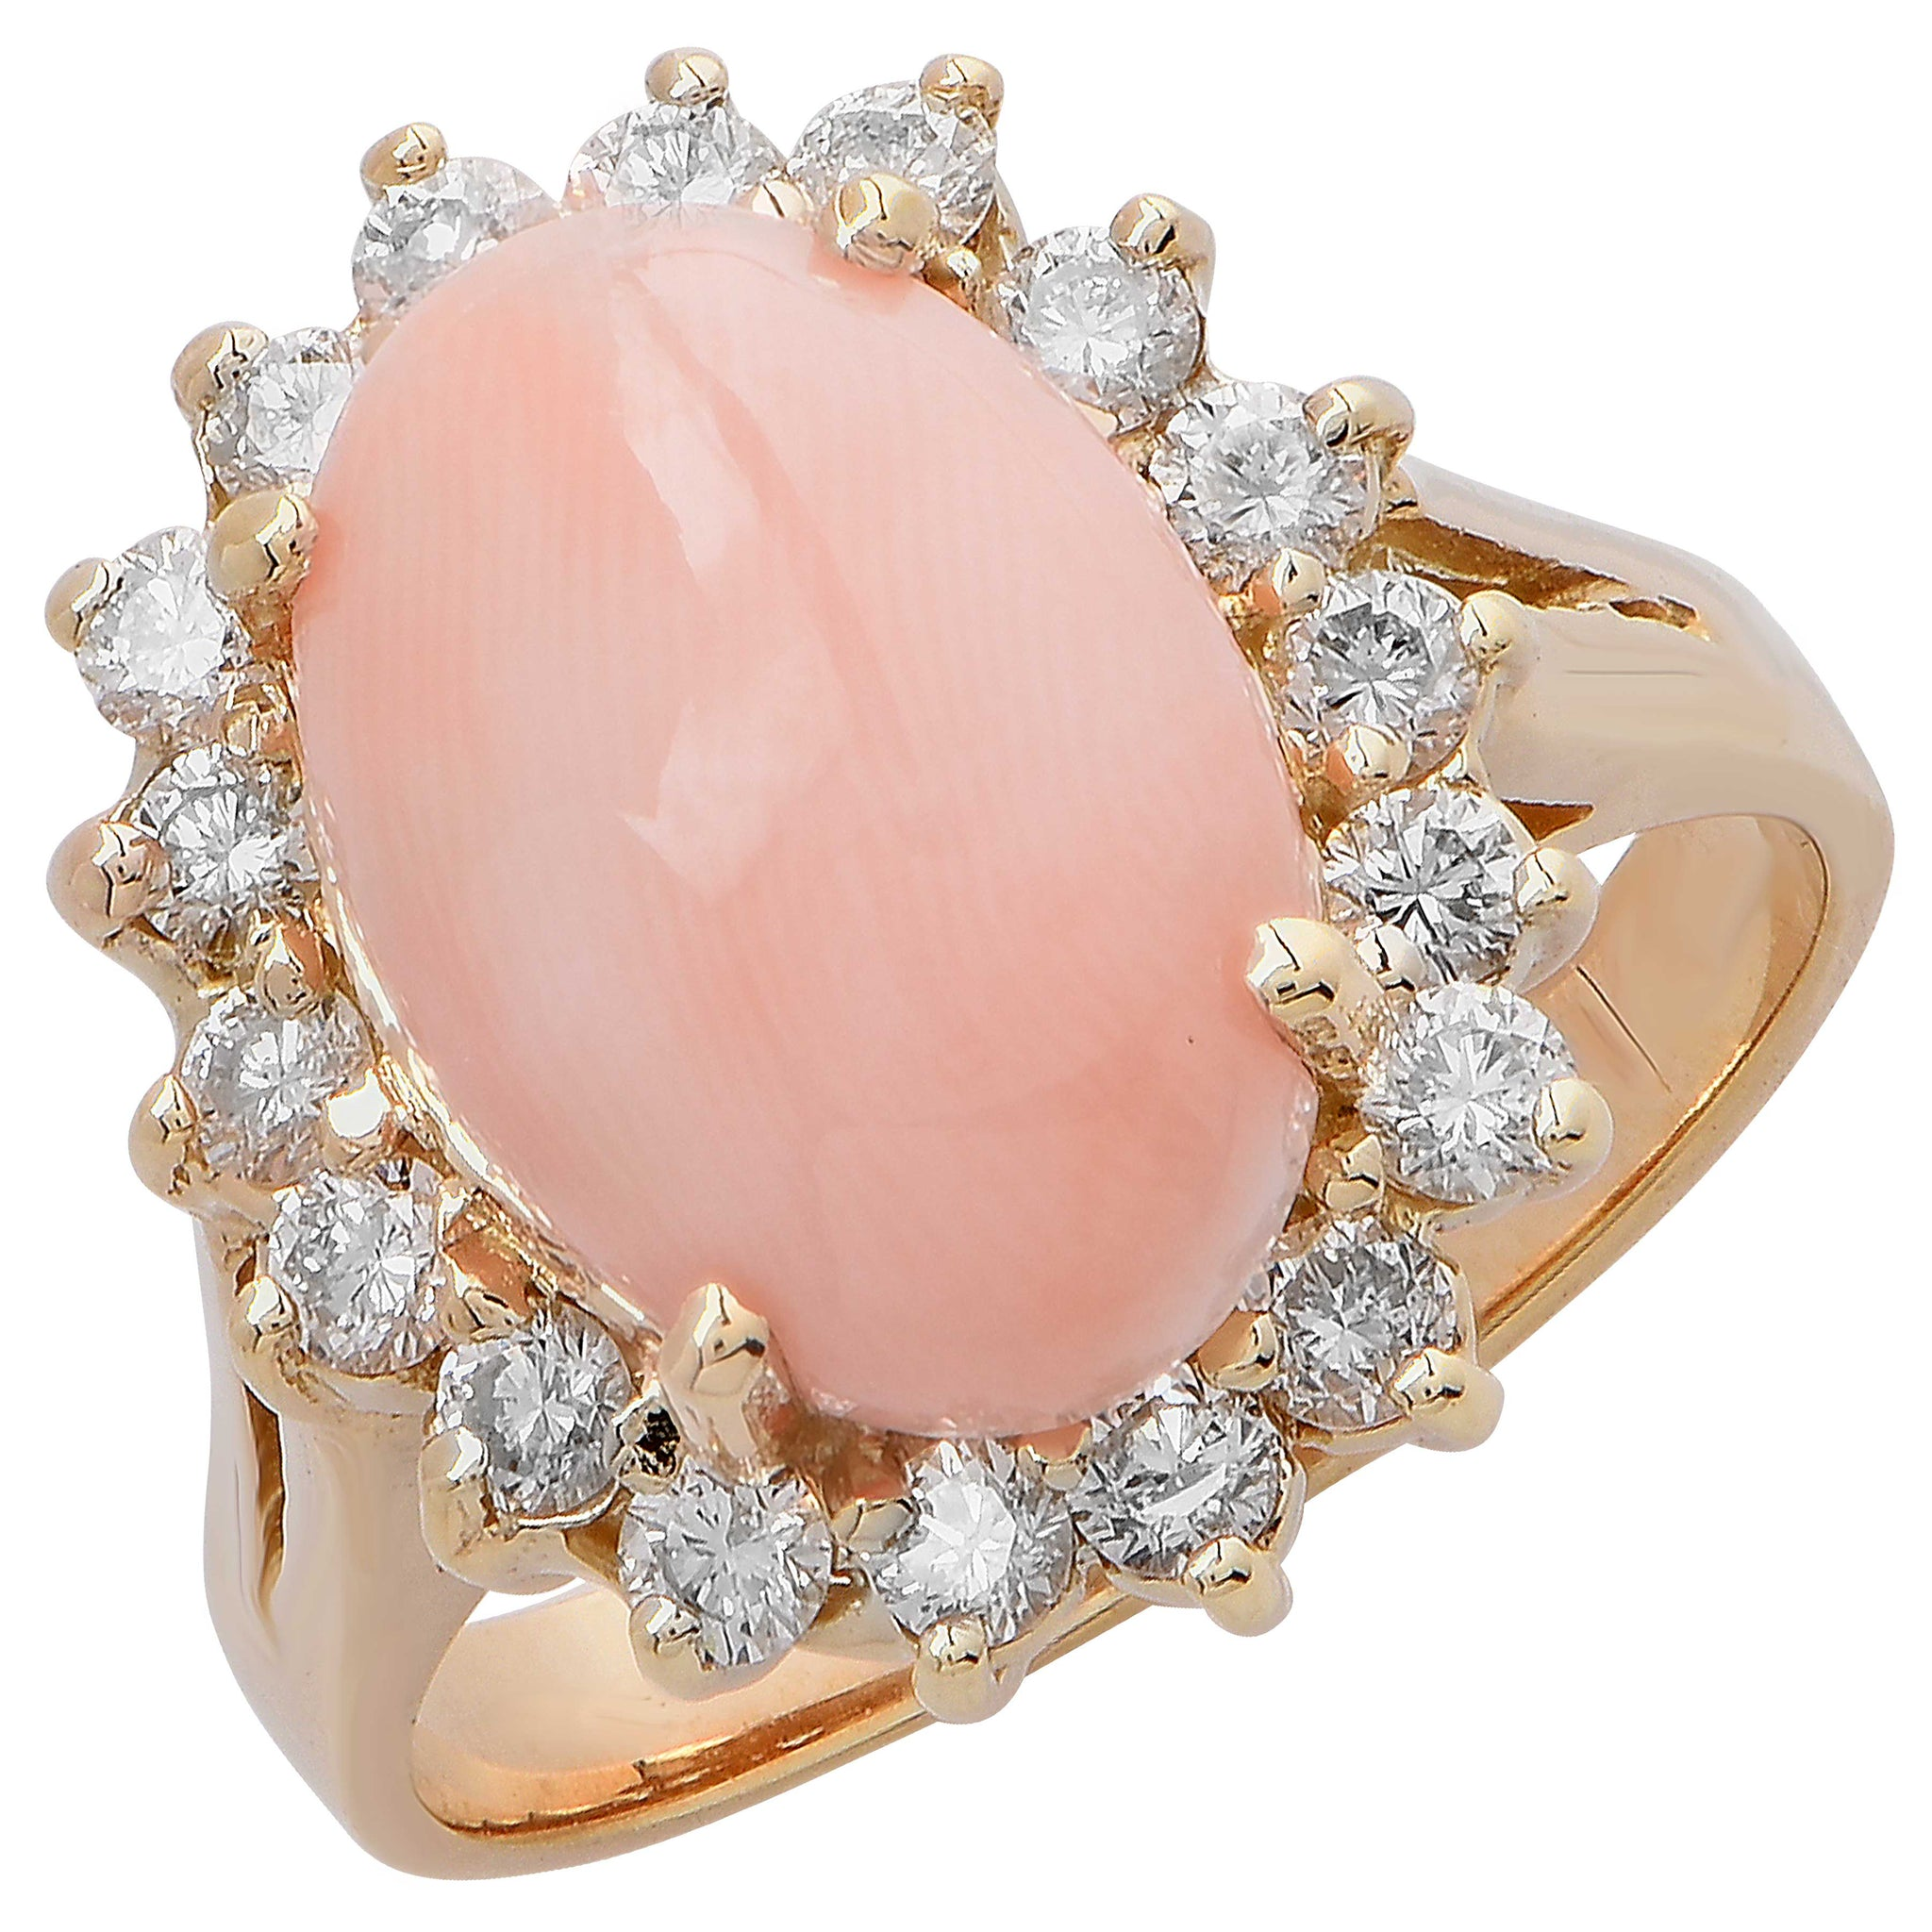 Angel Skin Coral and Diamond Ring - Regent Jewelers on Miracle Mile